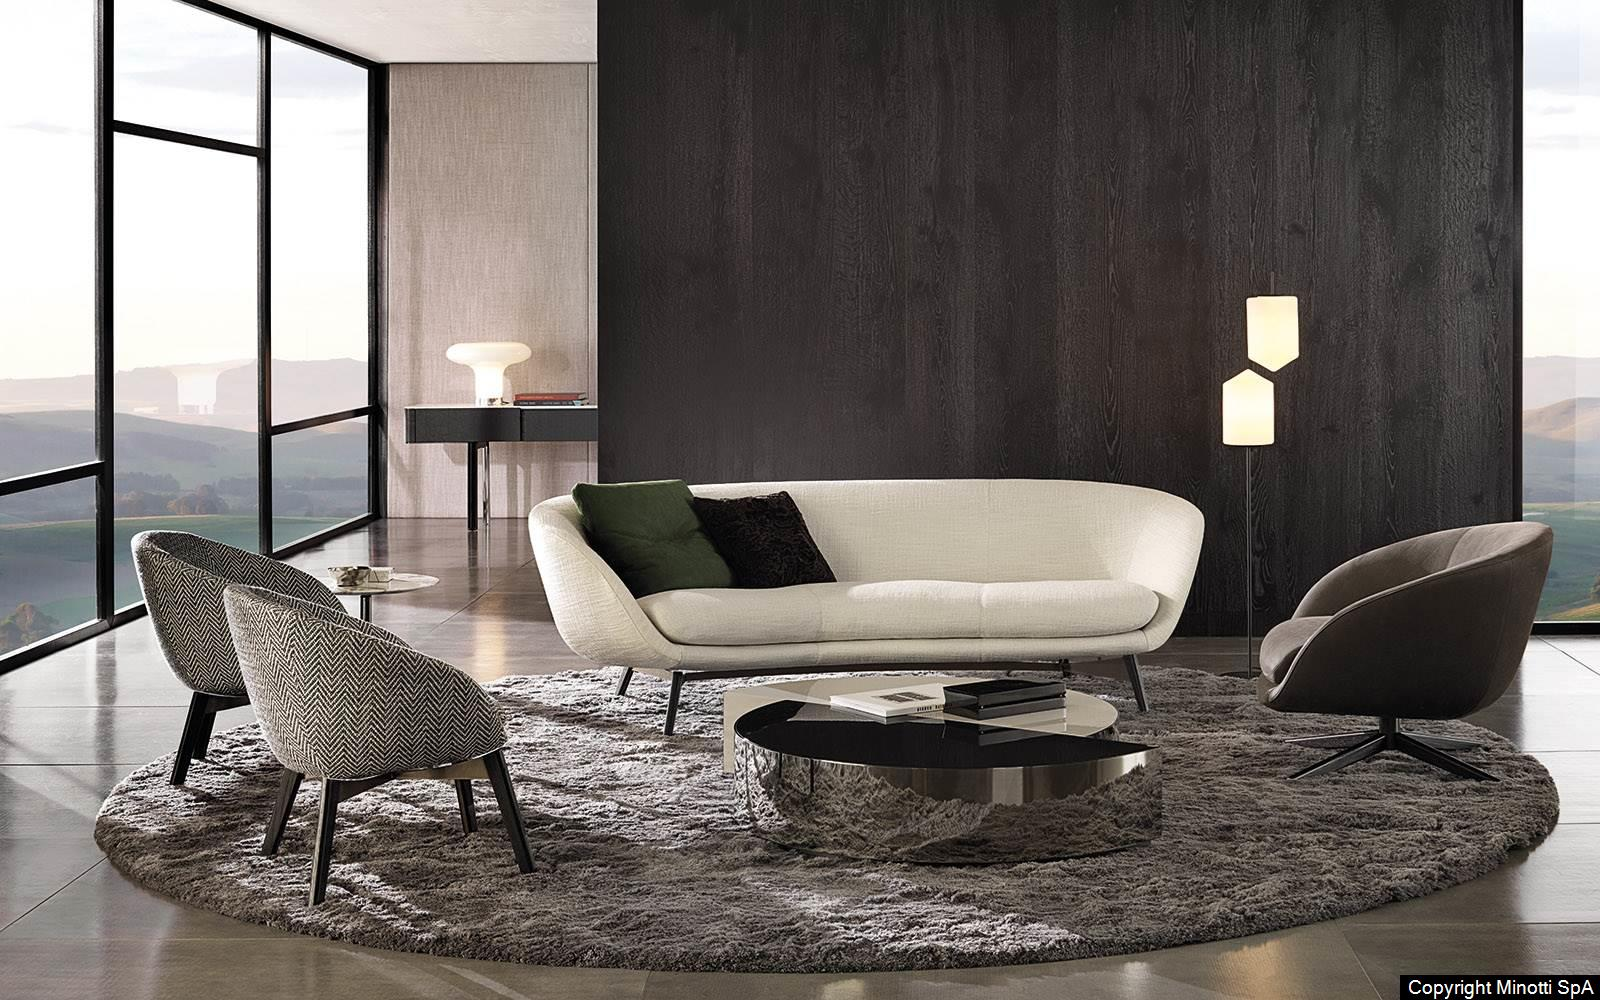 minotti russell sofa und sessel linie von dordoni bruno wickart blog. Black Bedroom Furniture Sets. Home Design Ideas